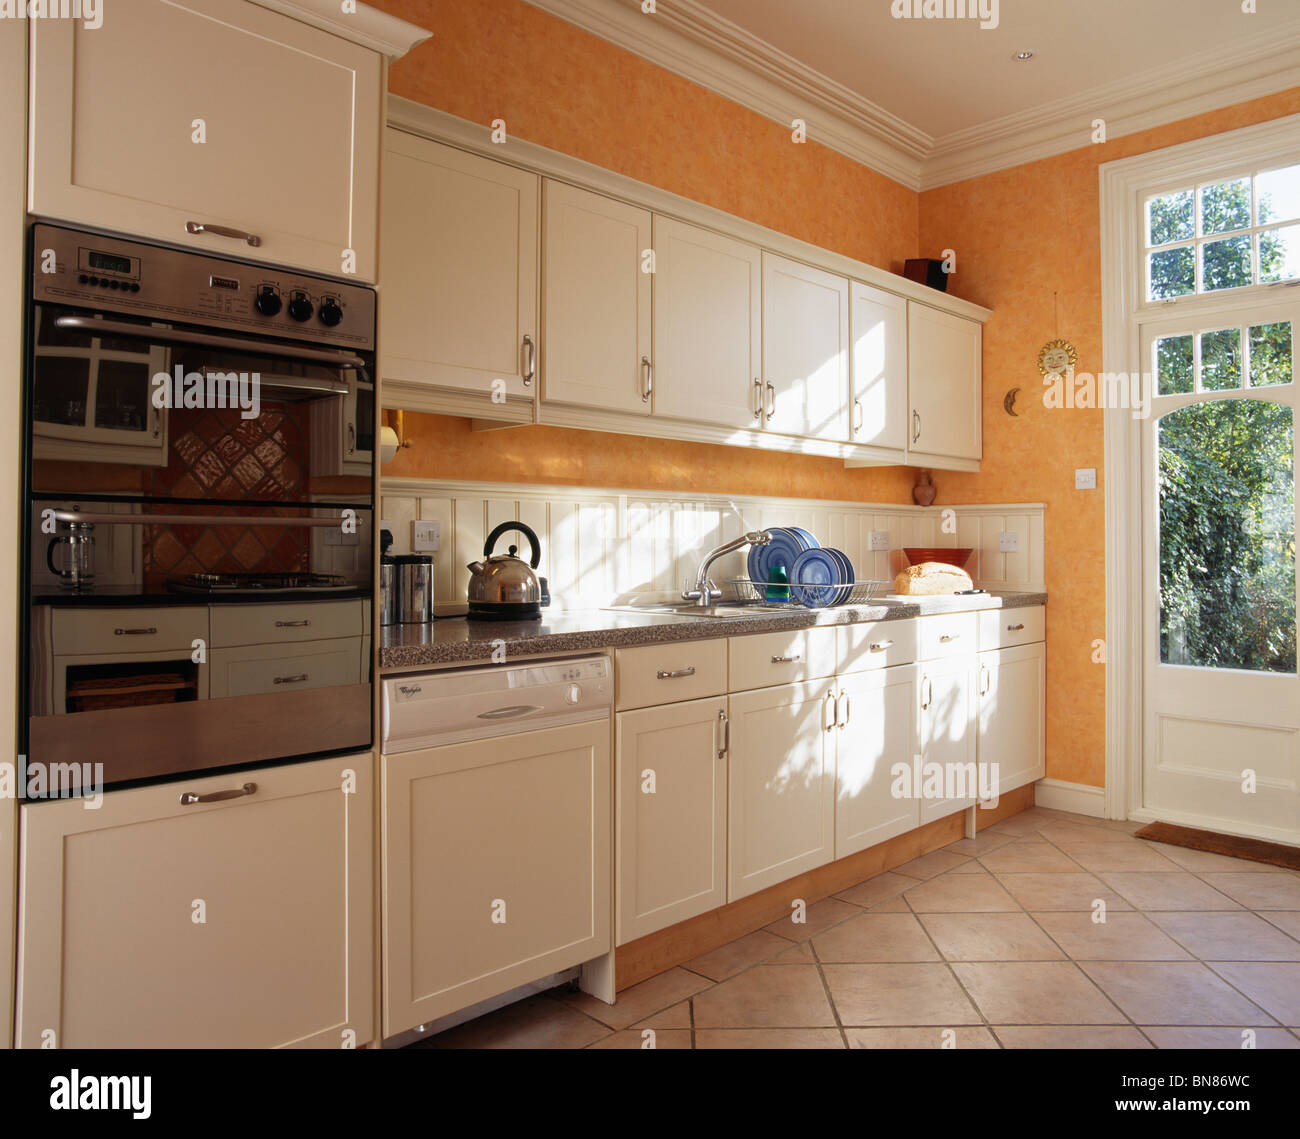 Orange Kitchen Room With White Cabinets Stock Image: Eye-level Oven In Modern Orange Kitchen With White Fitted